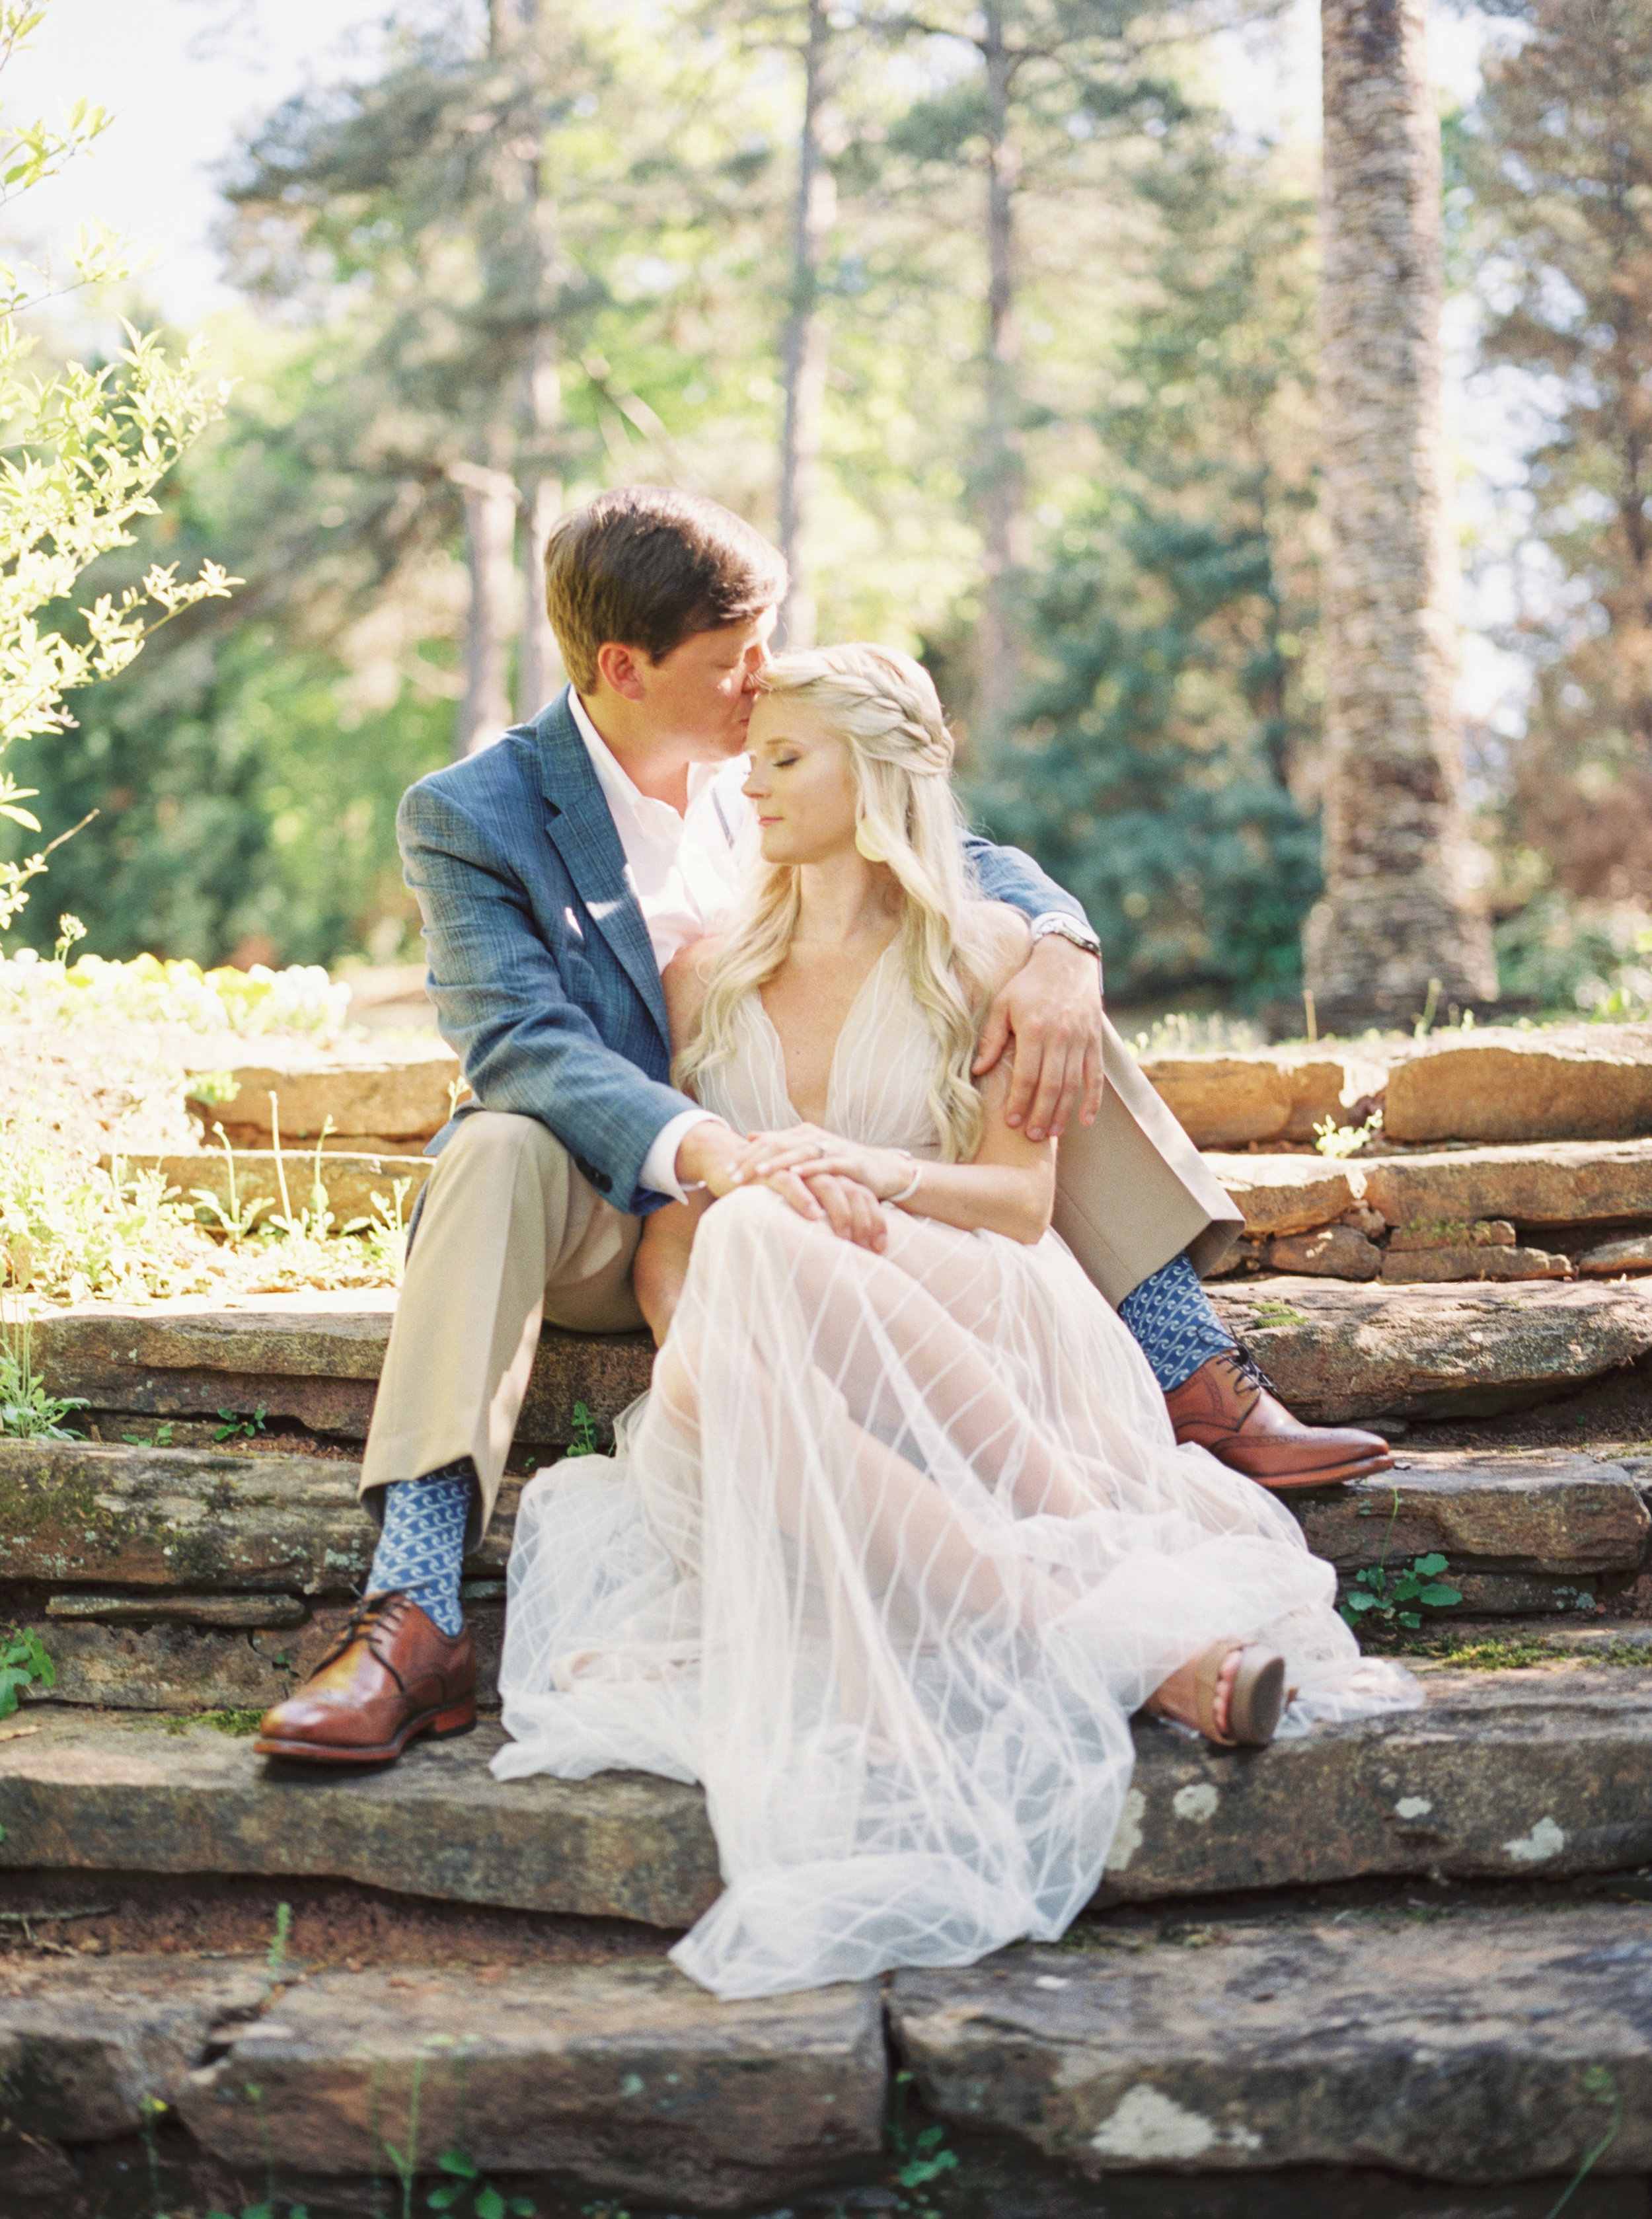 Erin_Johnny_Engagement_Dunaway_Gardens_Georgia_Film_Fallen_Photography-17.JPG